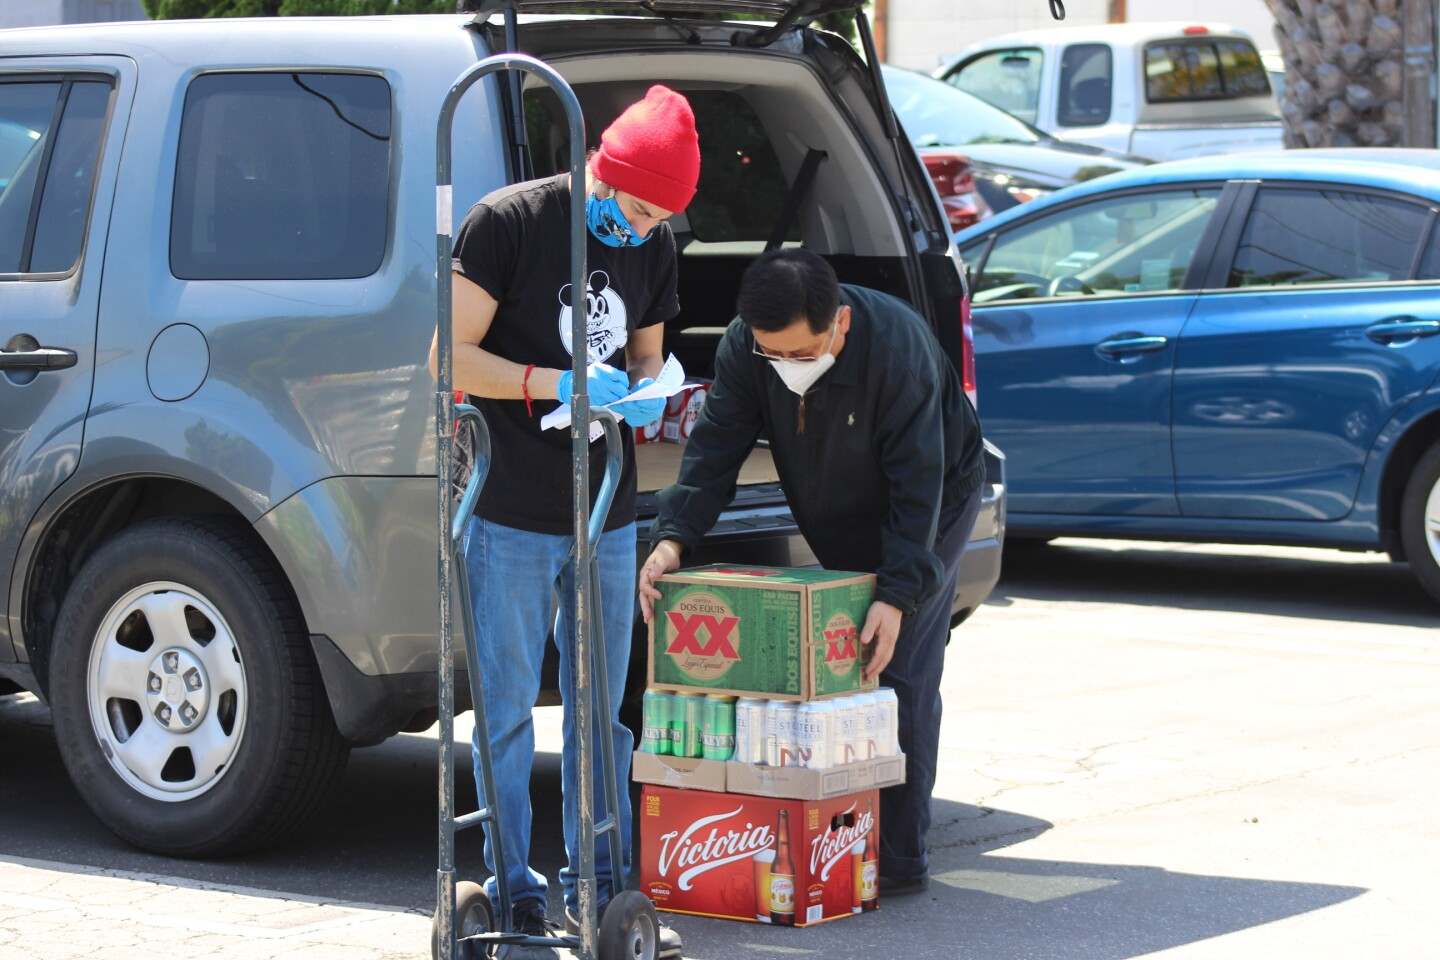 Curbside purchasing of alcohol is booming in the time of COVID-19.   Karen Foshay